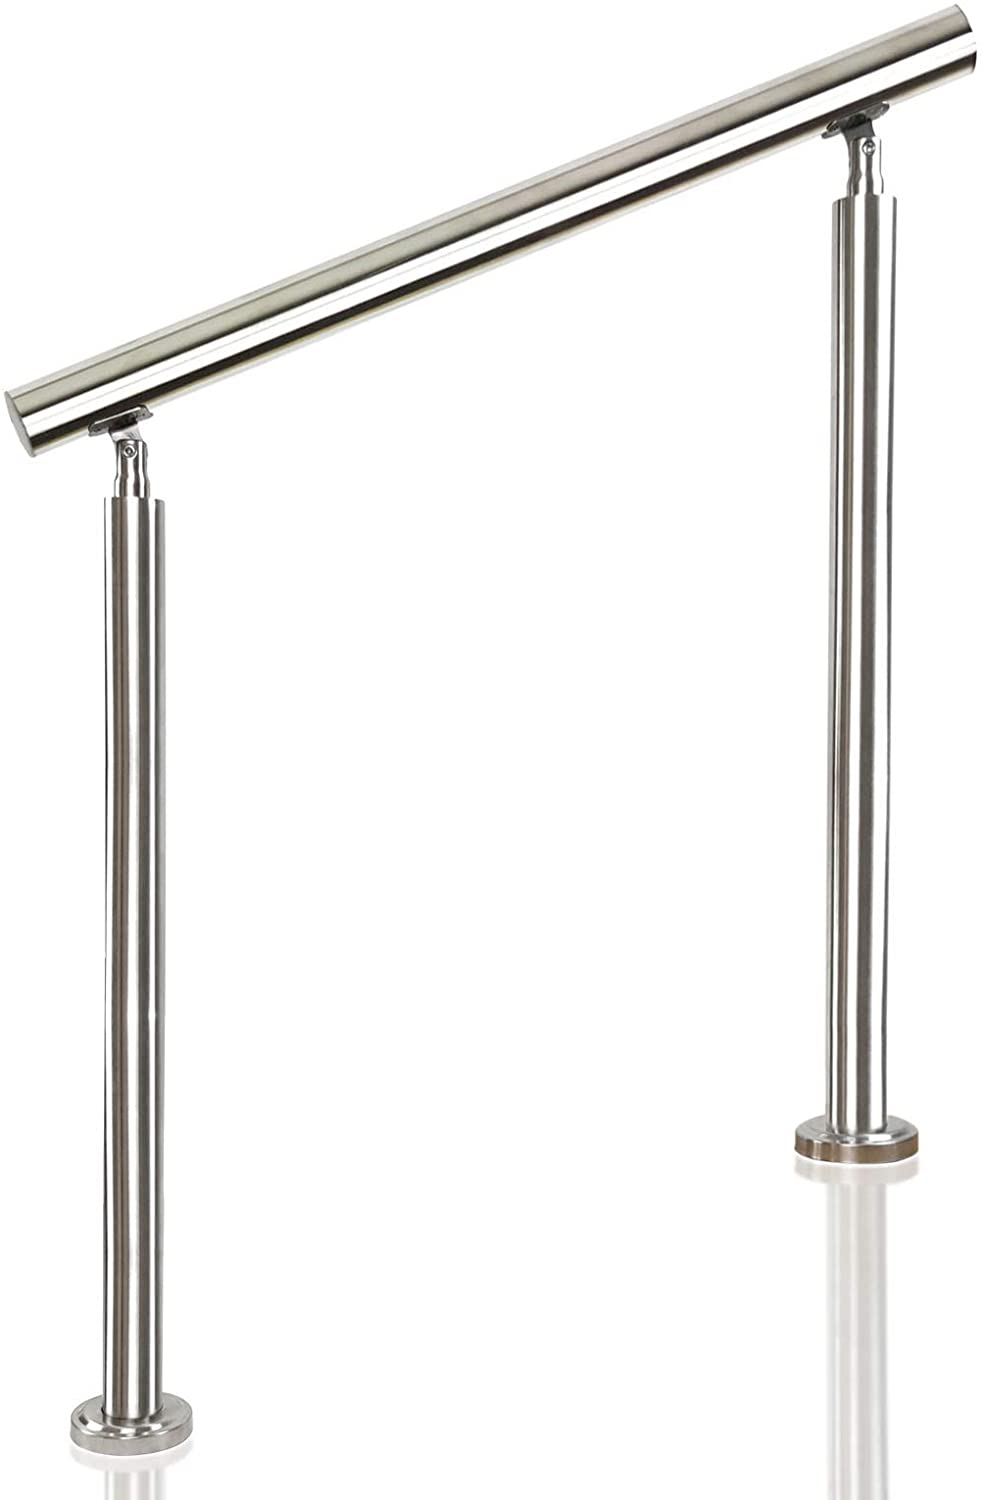 Hanone 304 Stainless Steel Handrail for Deck Stairs Indoor Outdoor Metal Balustrade Hand Railing, Round Pipe Tube Brushed Rail Bars Adjustable Angle Fits 1 to 3 Steps - Complete Kit (Silver) 2.62ft